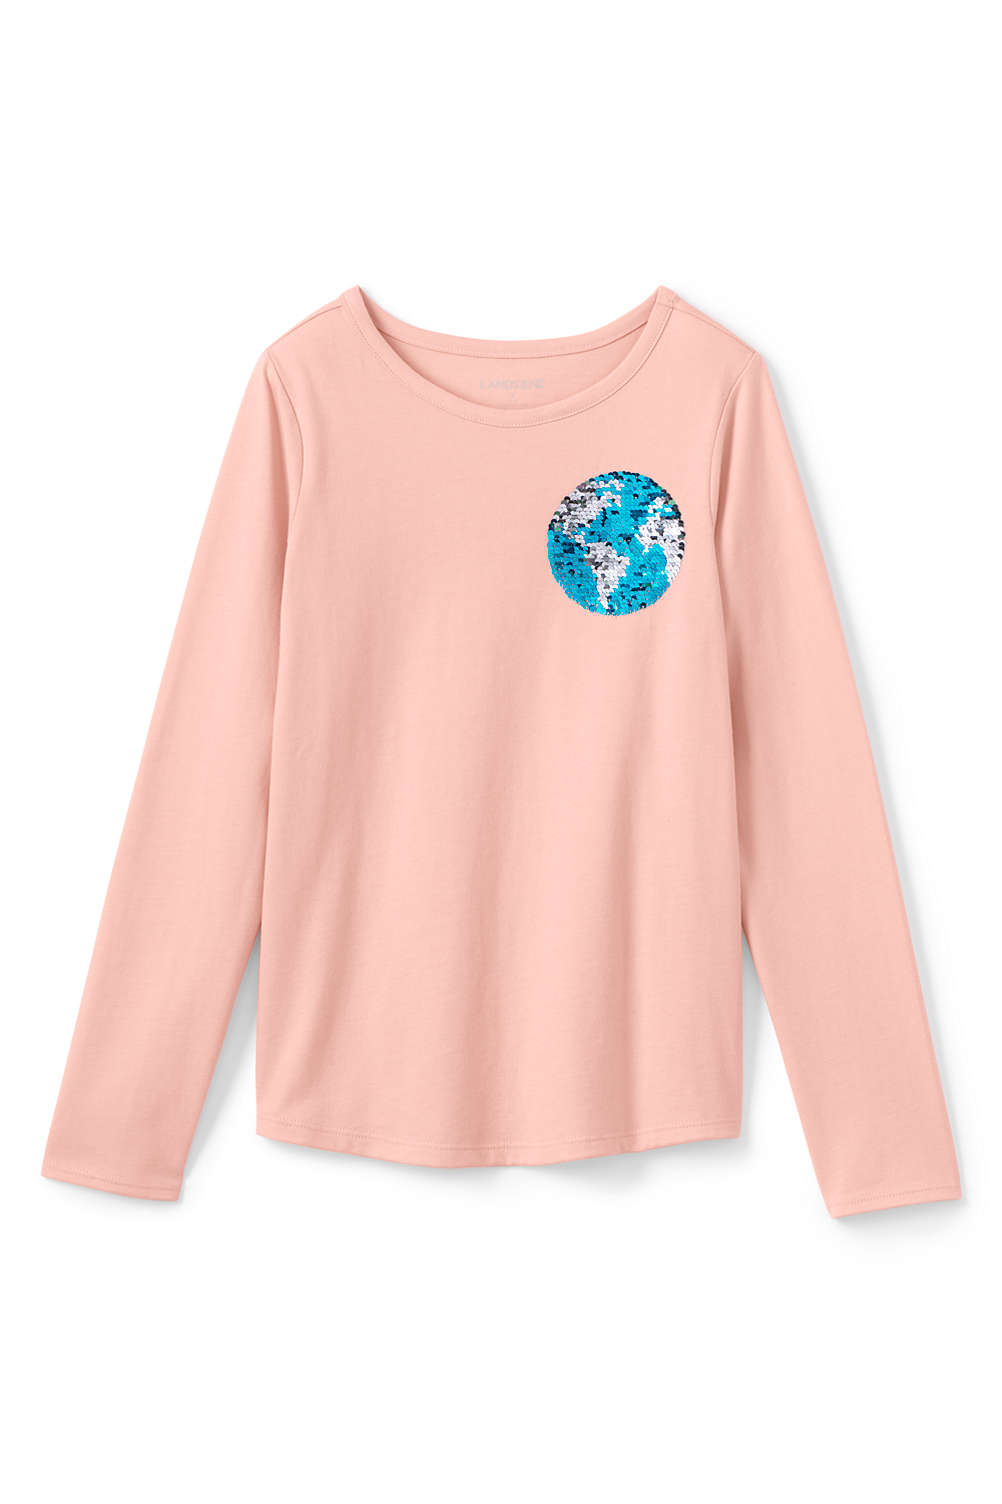 2308a1a0 Girls Flip Sequin Graphic Tee from Lands' End